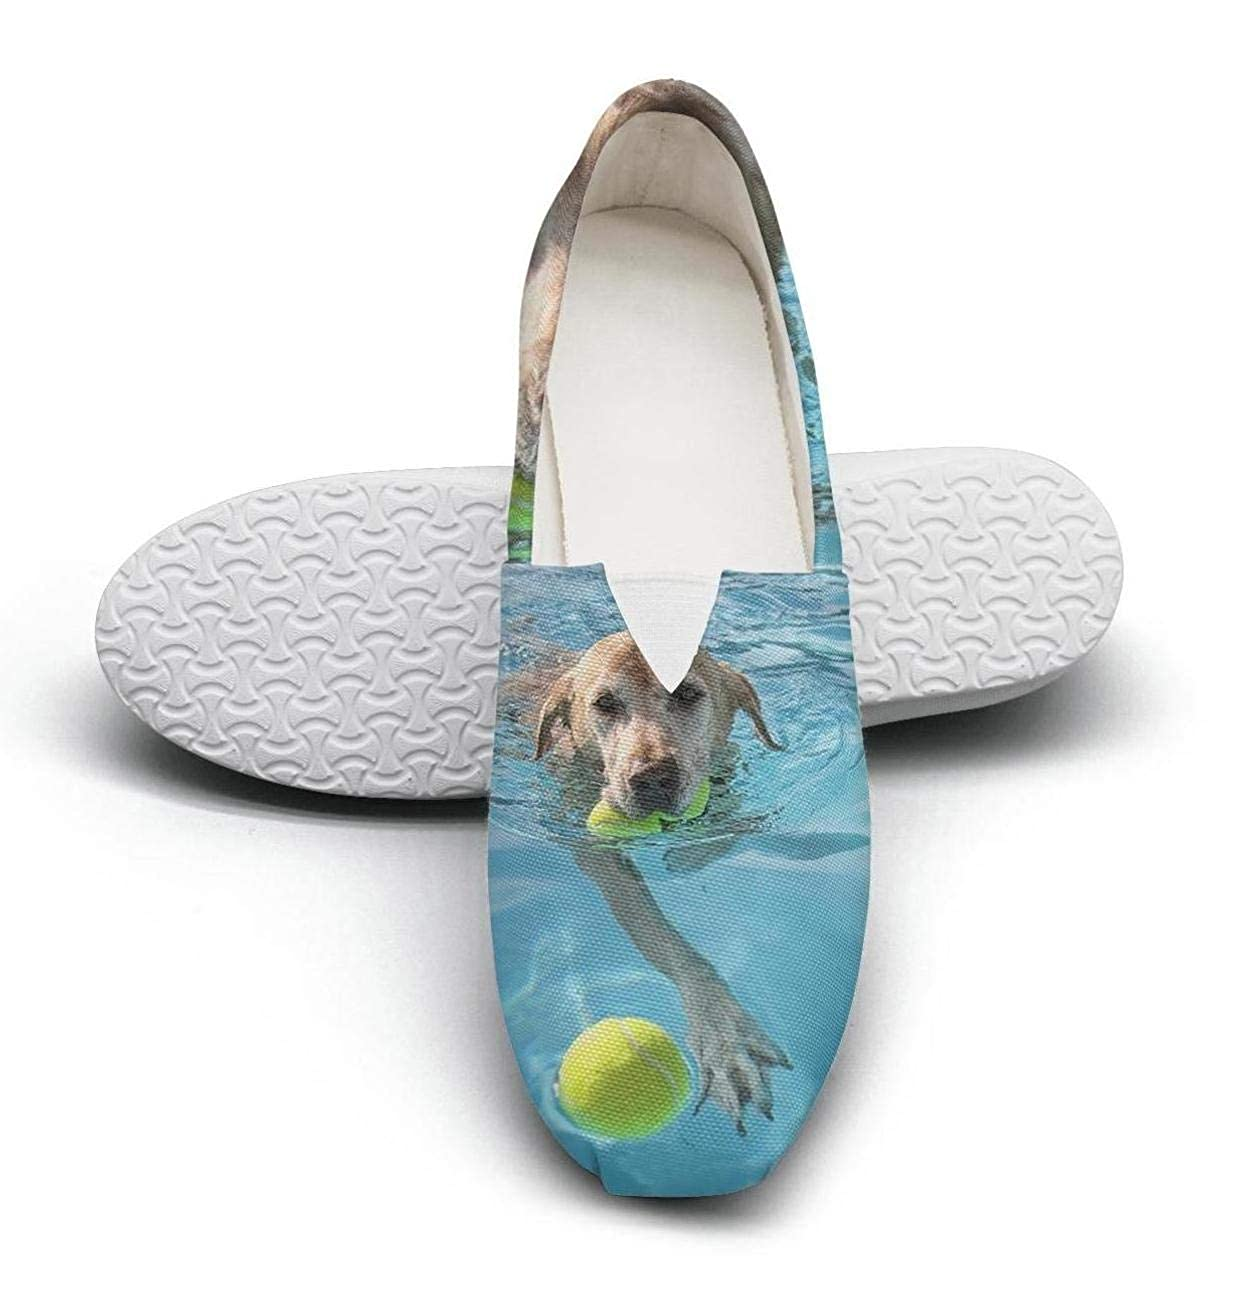 nkfbx Labrador Dog with Ball at Public Pool Casual Flat Sneakers for Girls Walking